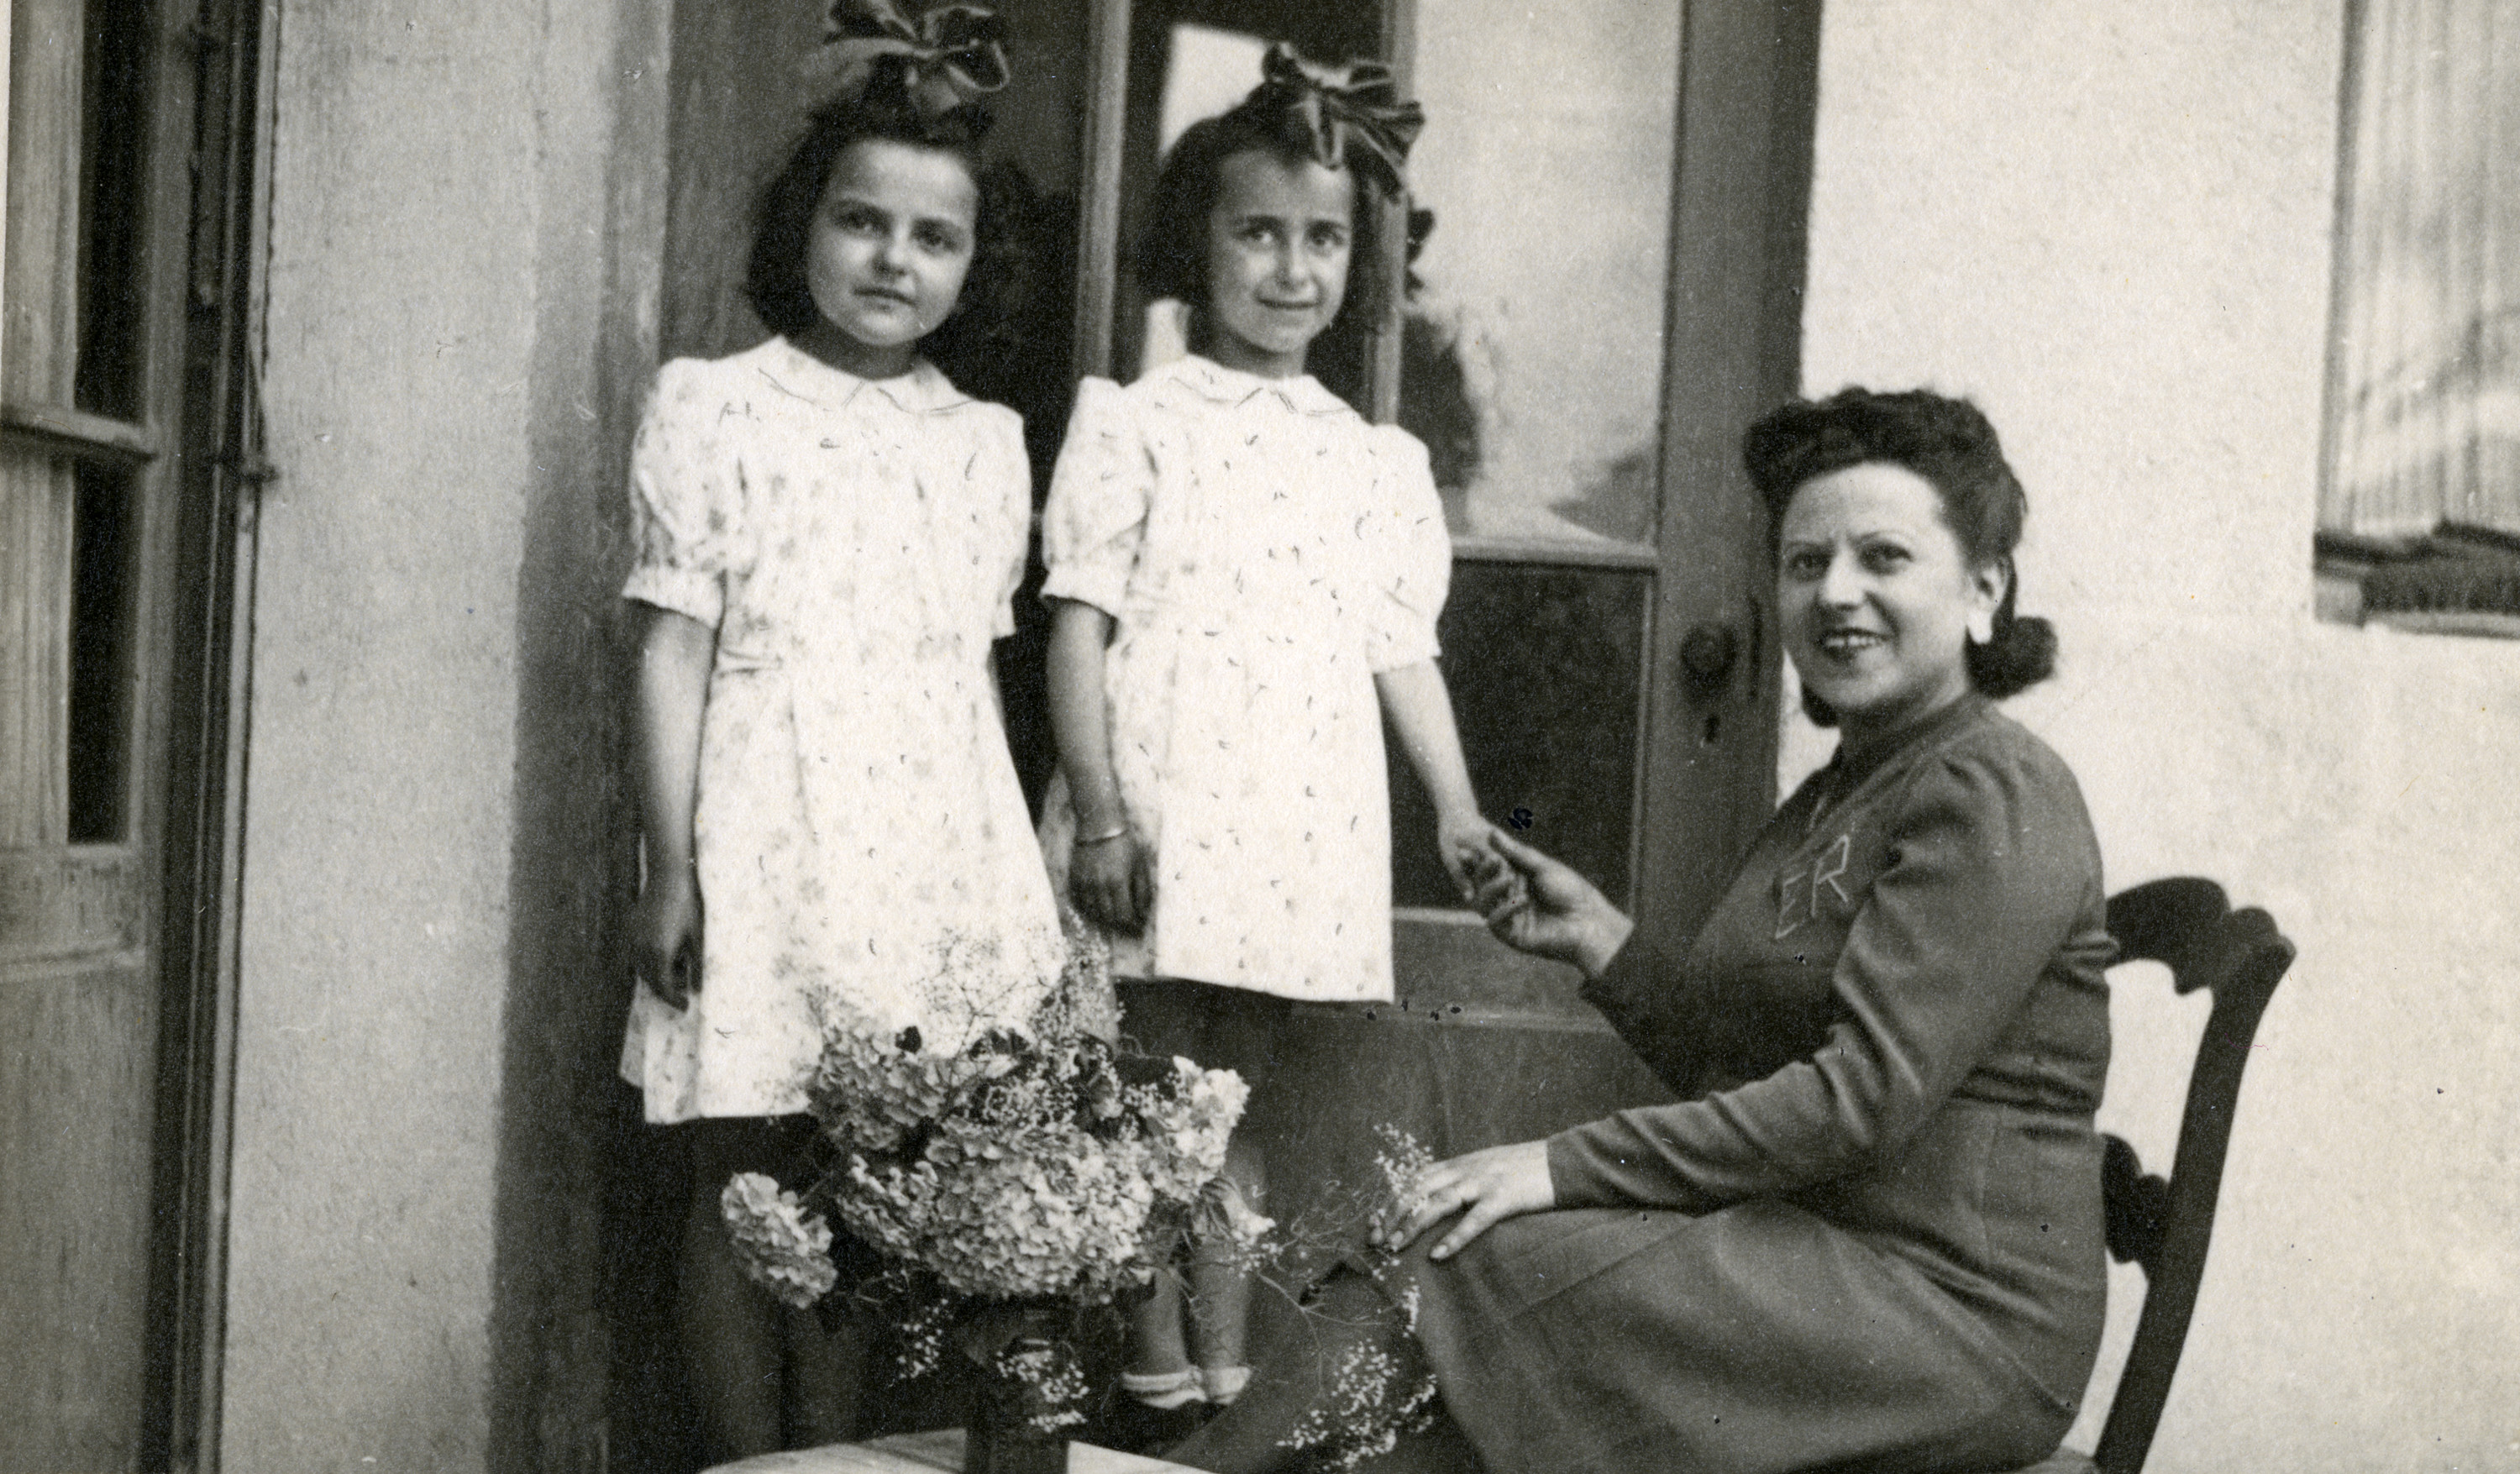 Claire Ridnik, her mother Etla and cousin Aliette pose in their apartment towards the end of the war.